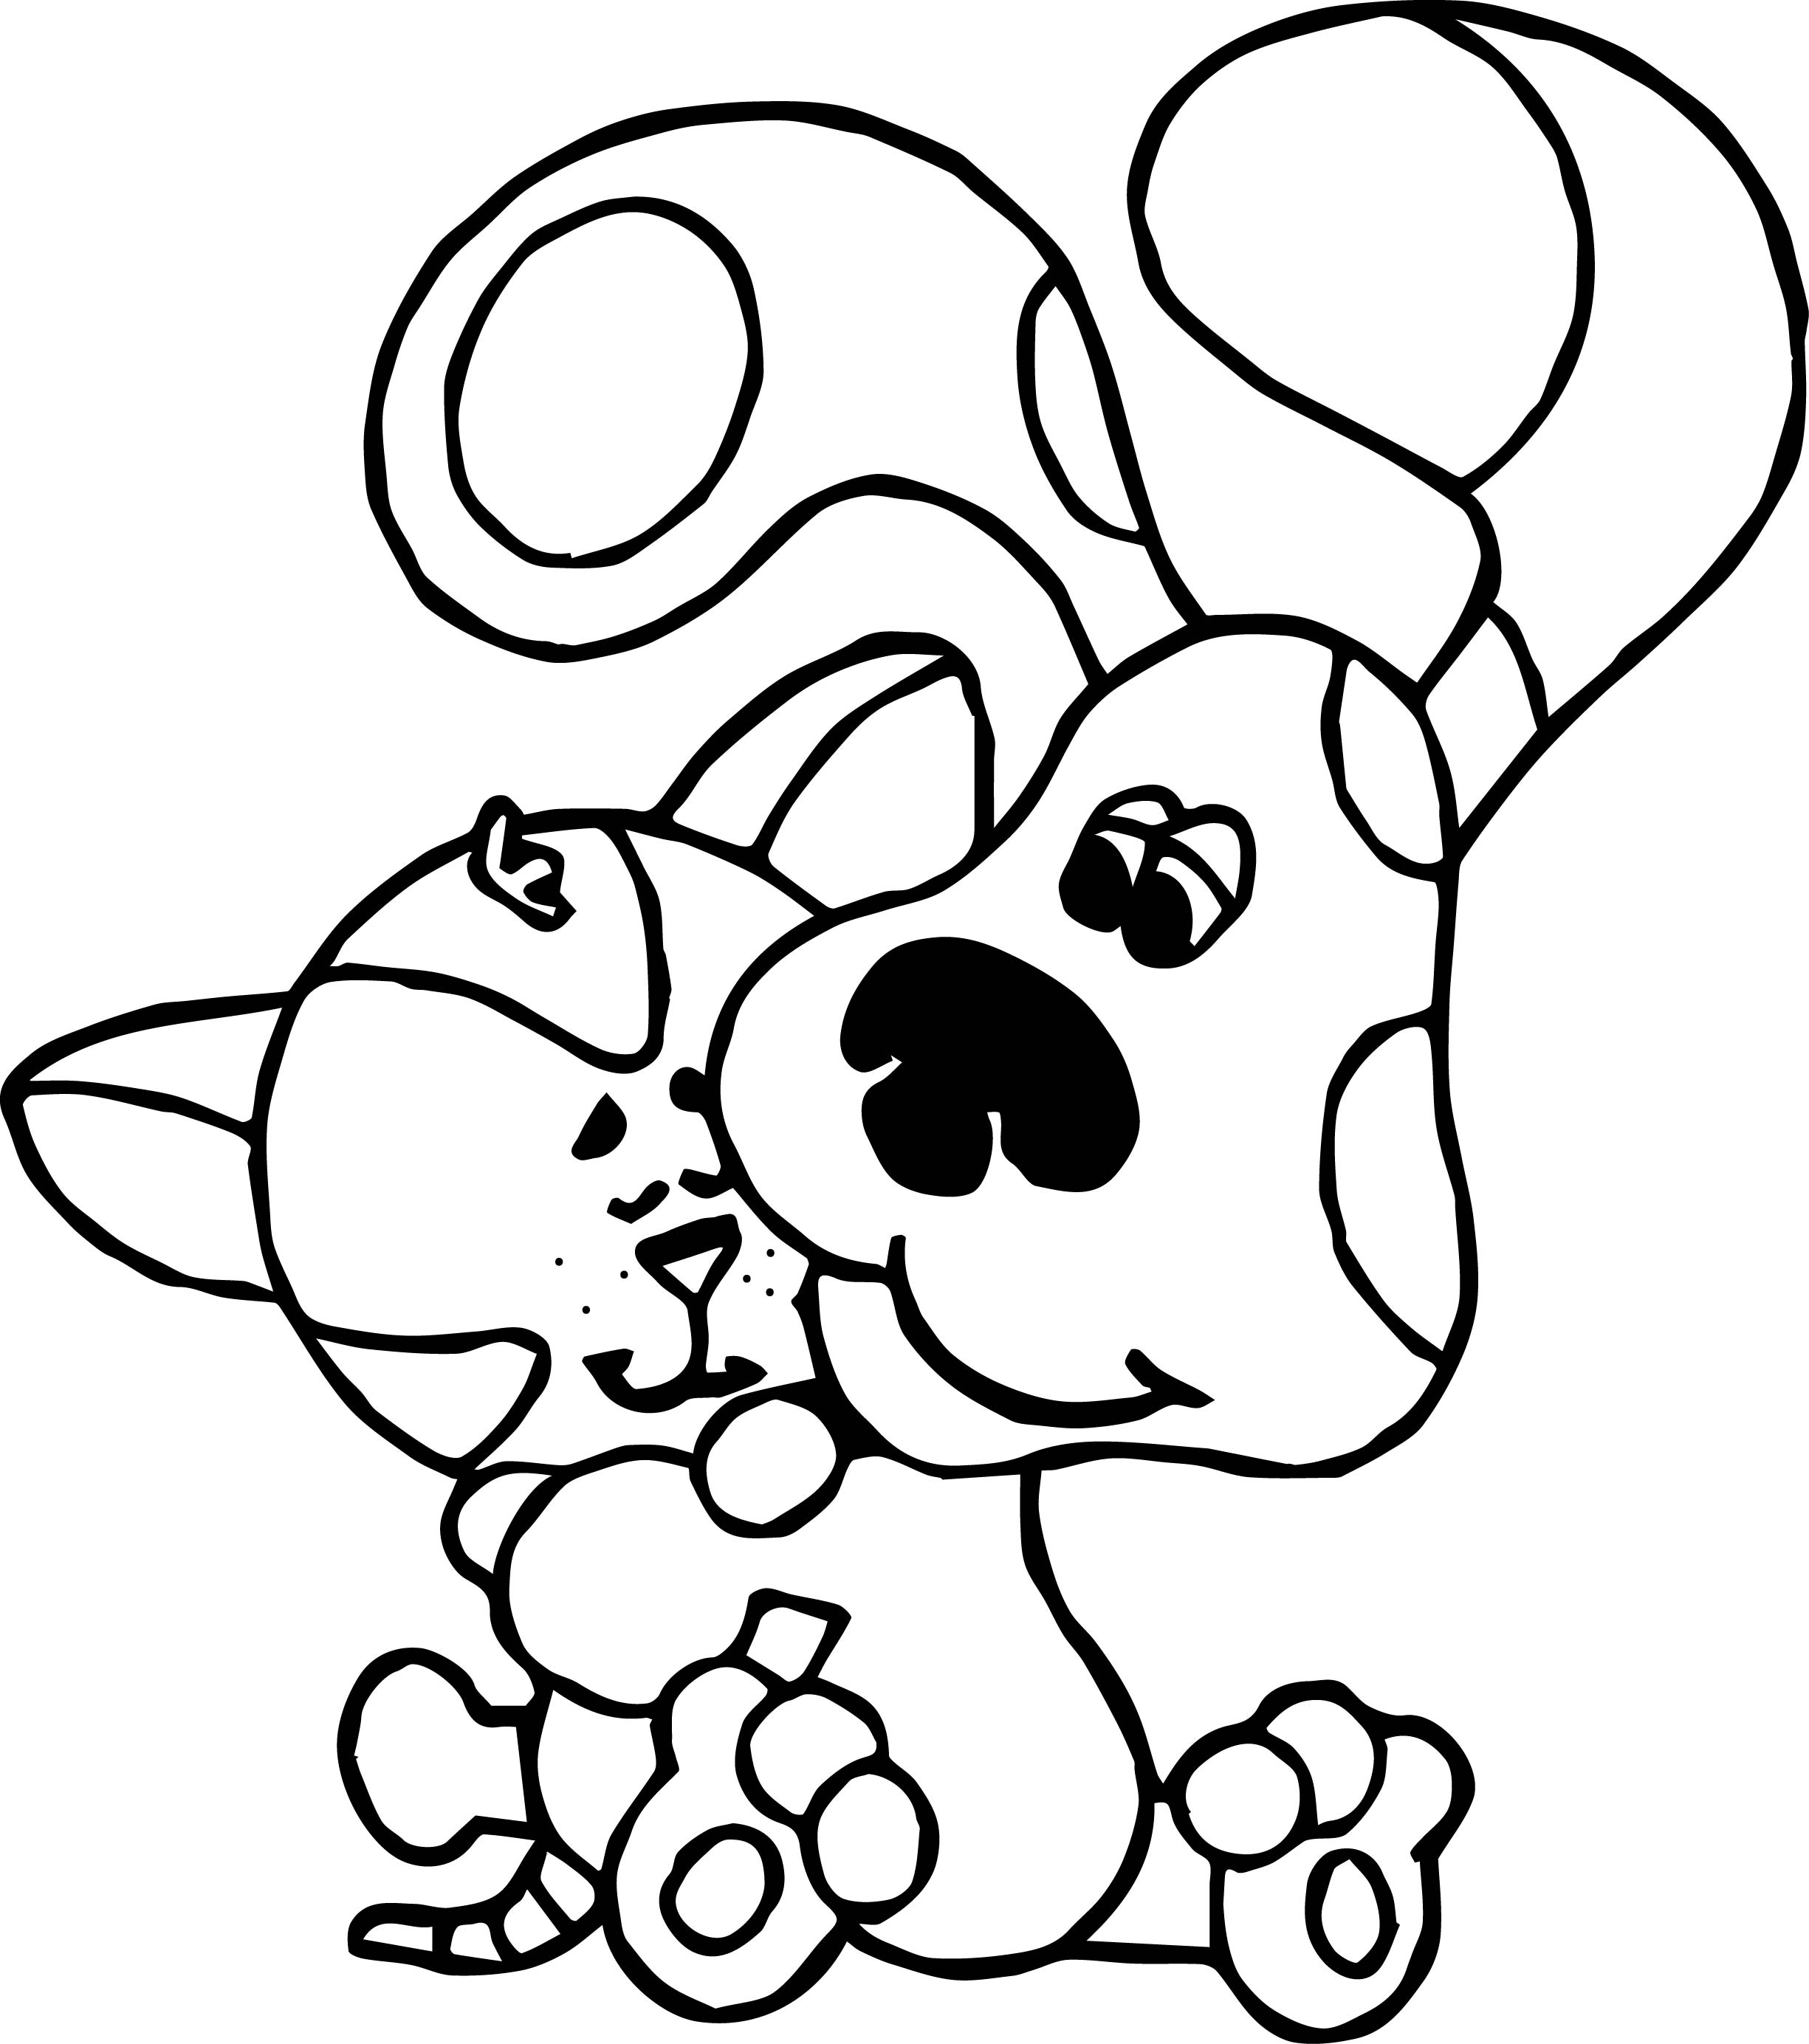 Cat Paw Drawing | Free download best Cat Paw Drawing on ClipArtMag.com